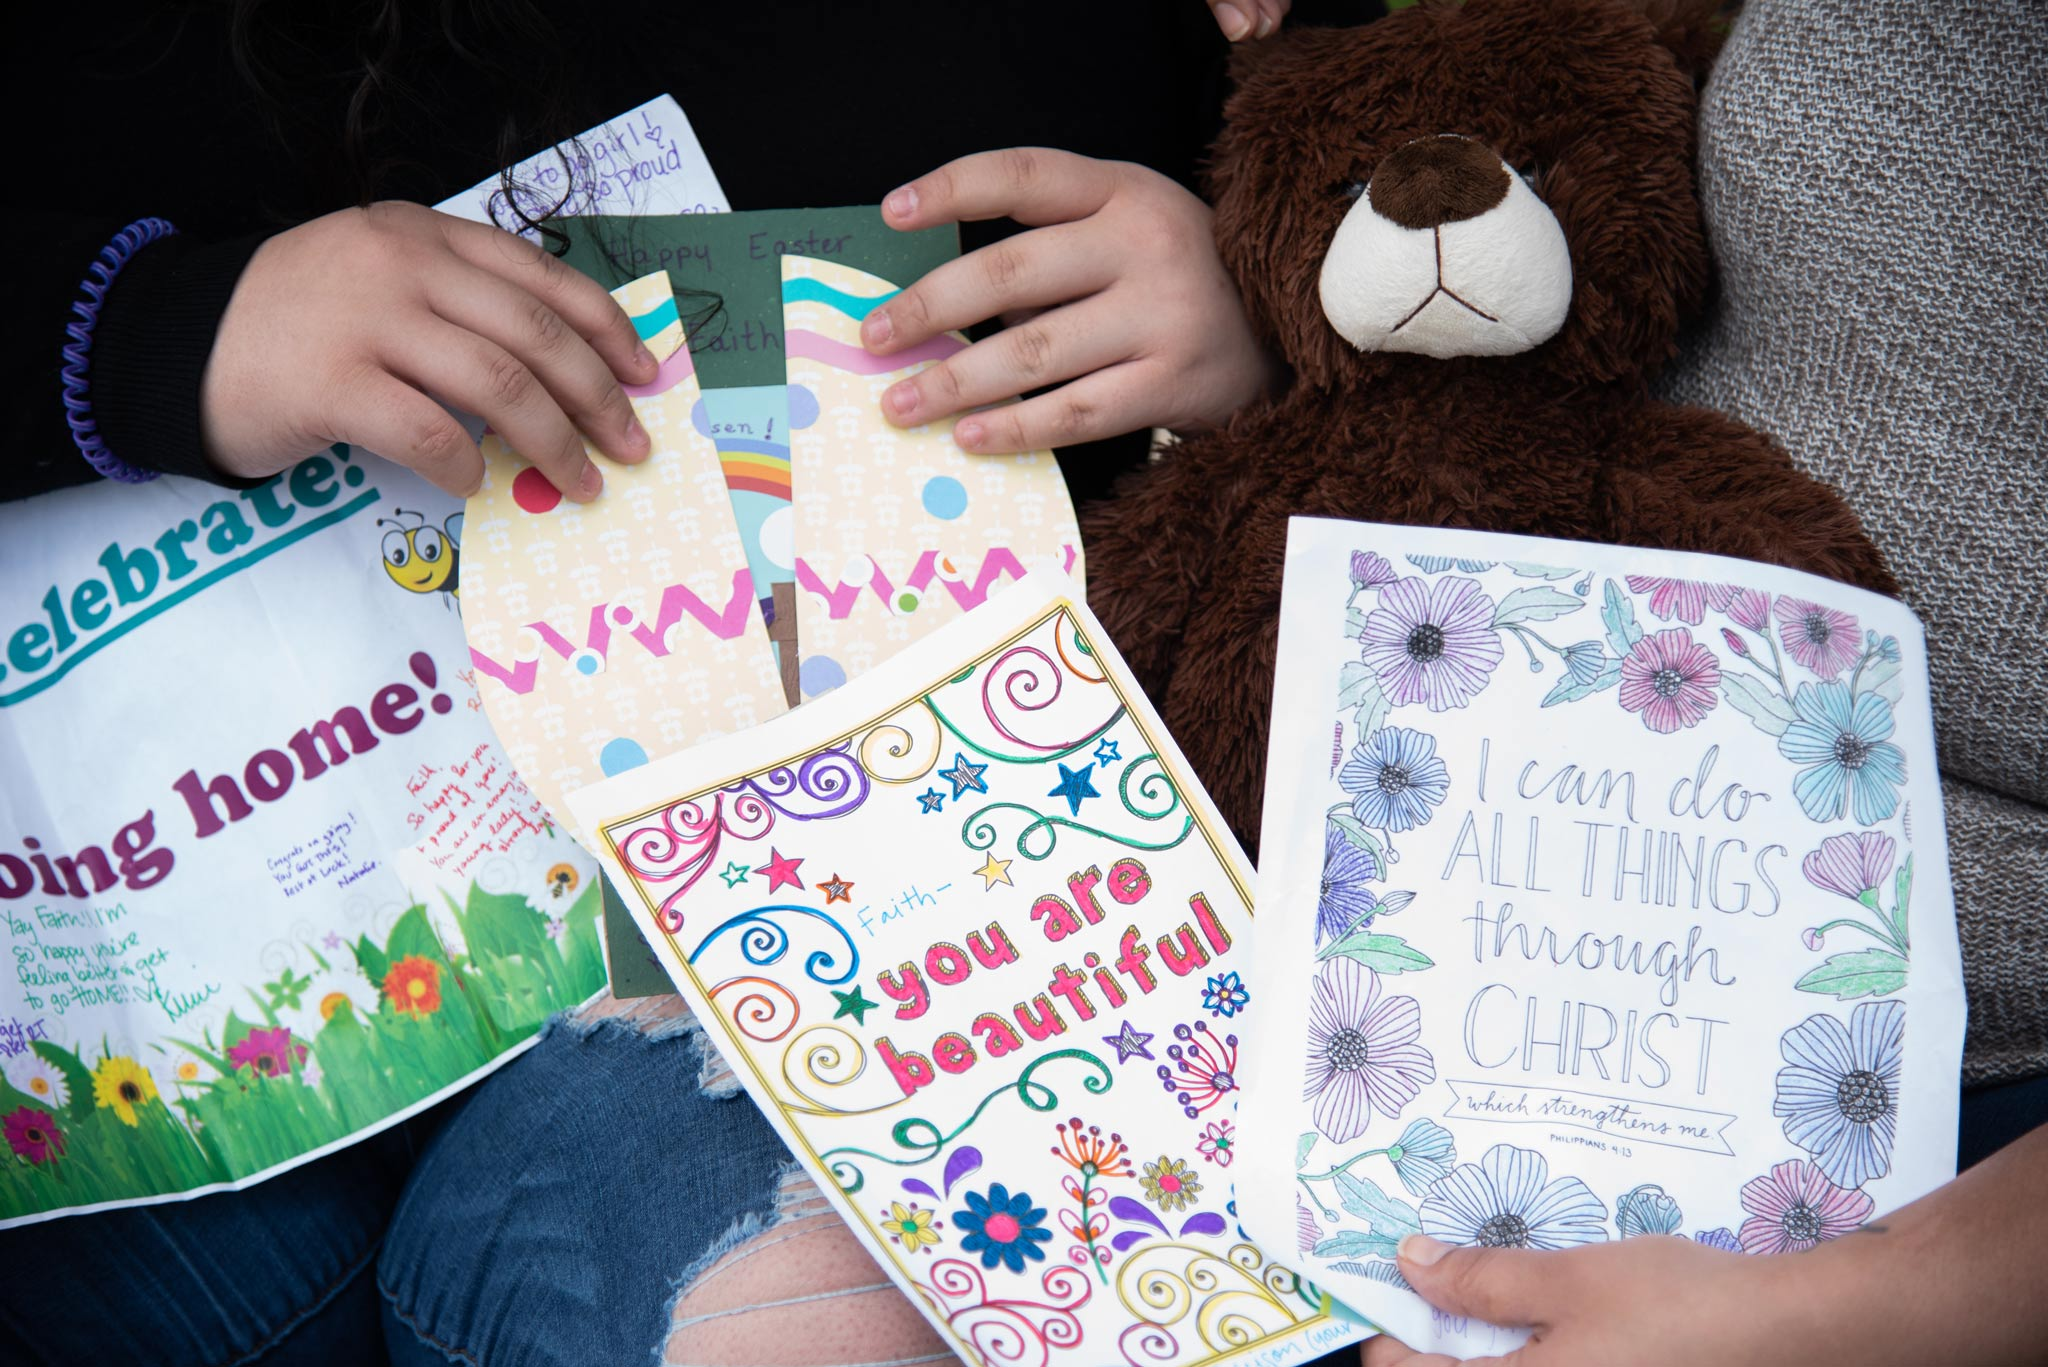 Handmade cards from Faith's nurses with inspirational phrases and well wishes.